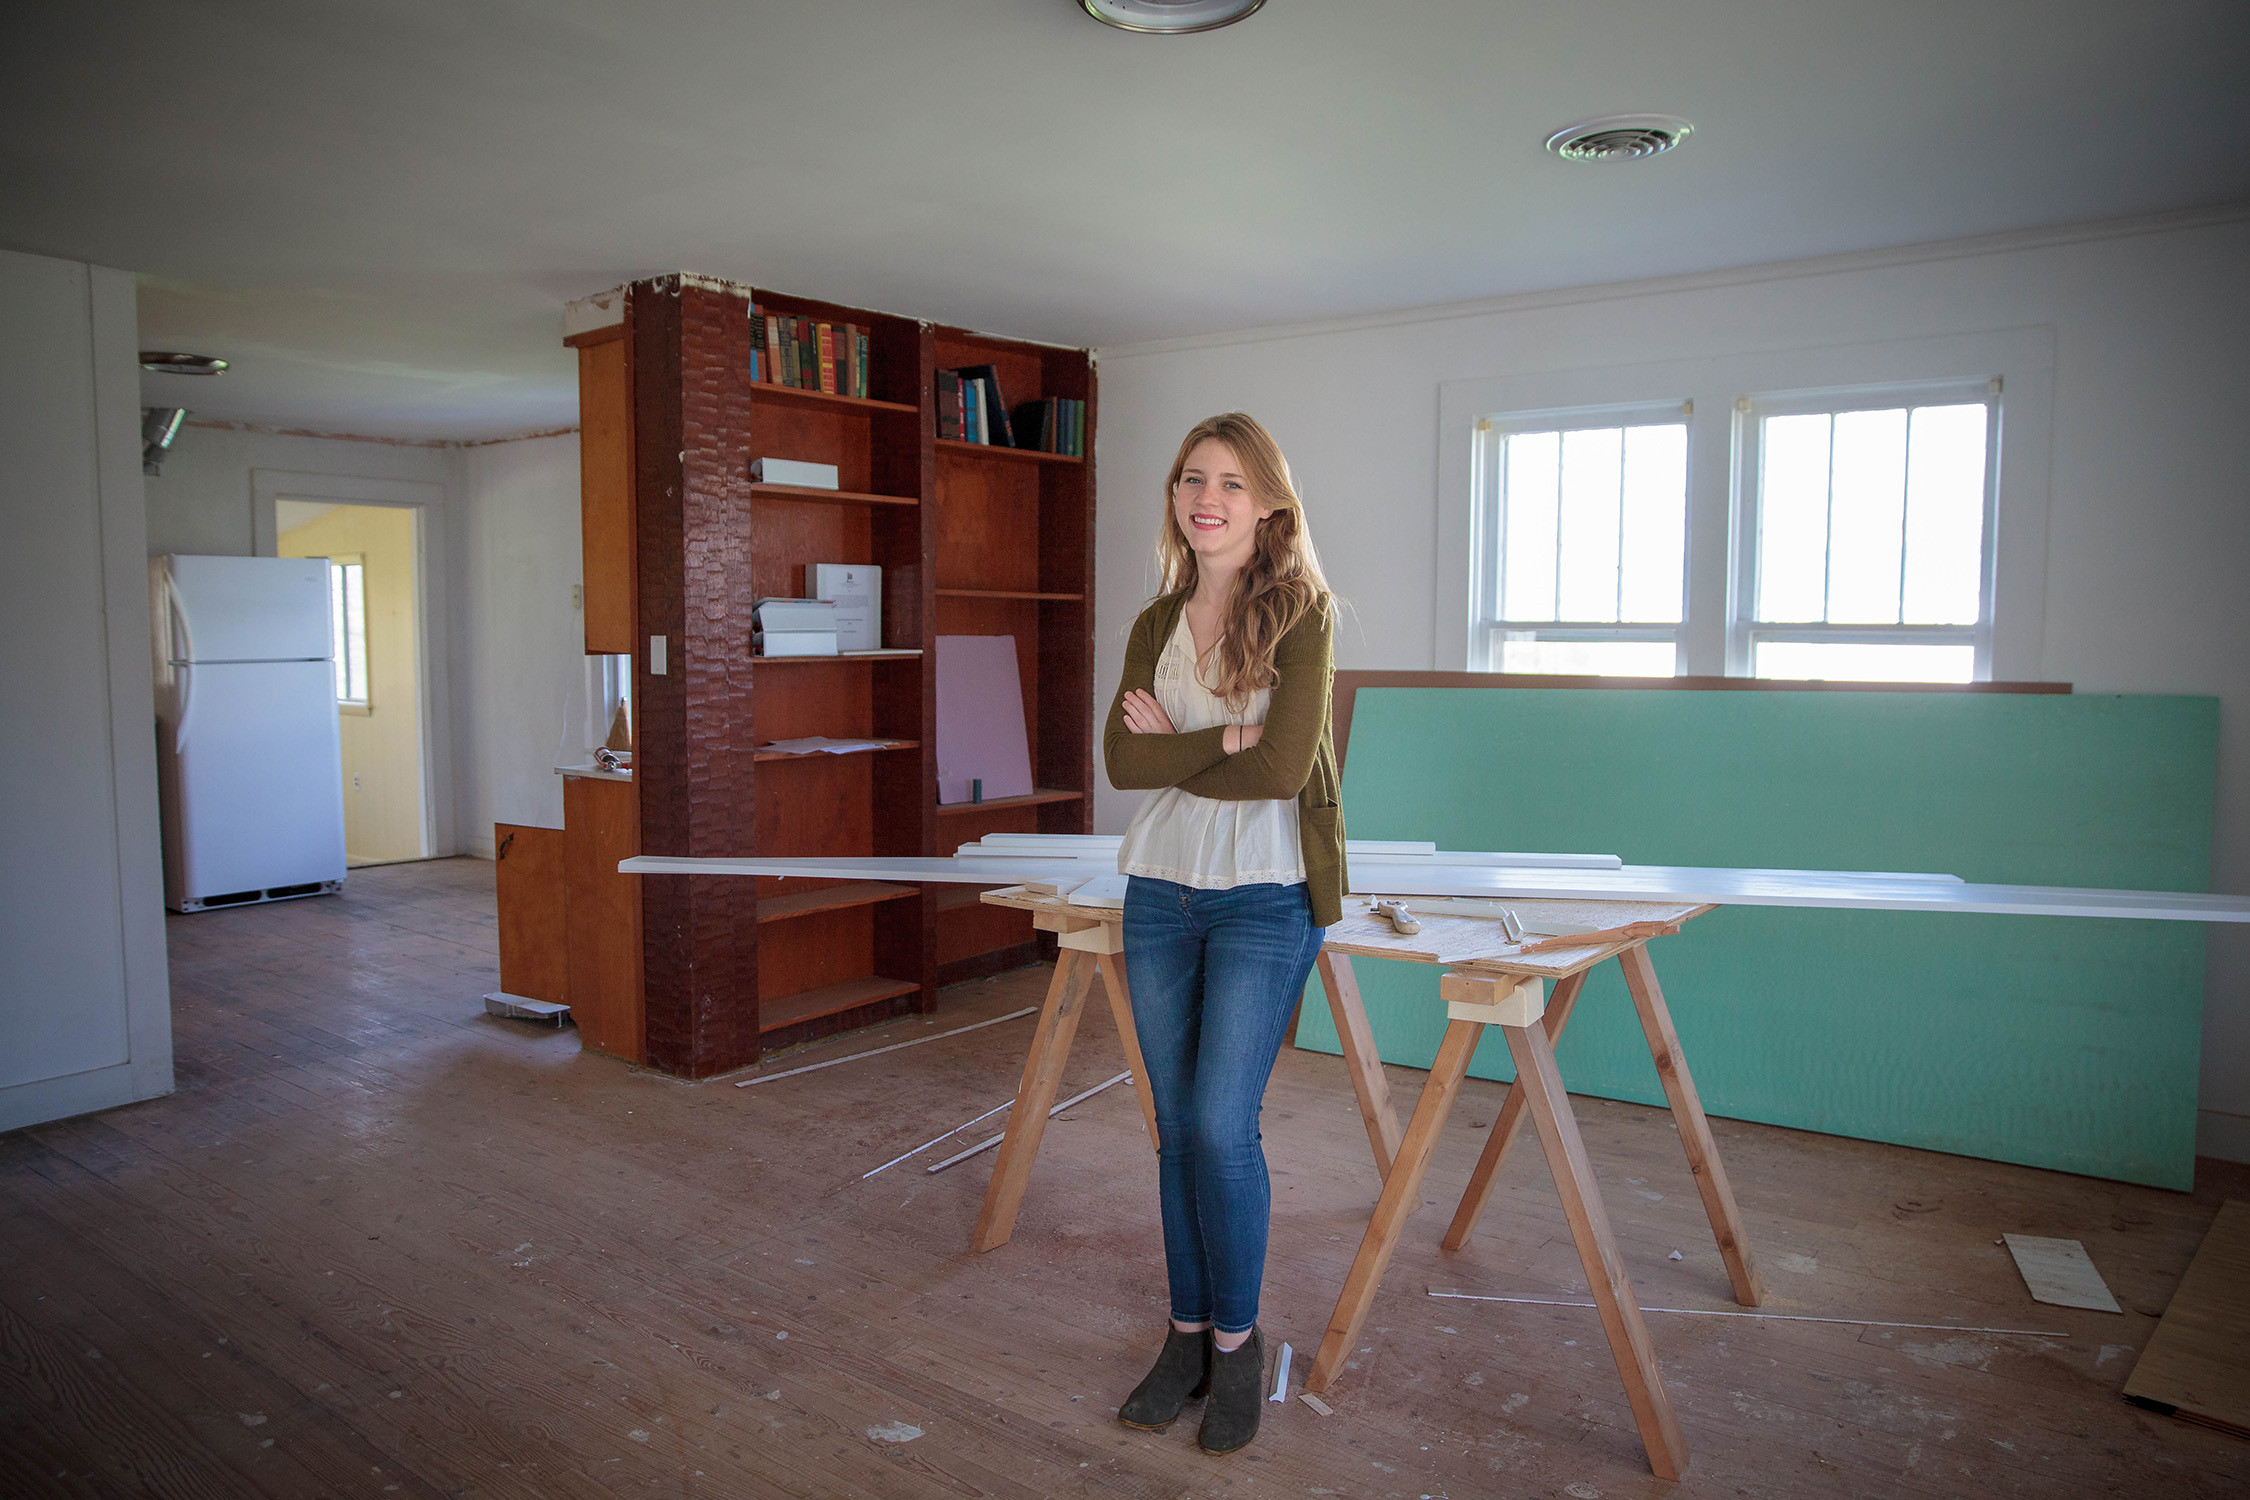 Emmie Chambers in the building she's helping transform into a new wing of the Beersheba Springs Medical Clinic. Photo by Buck Butler